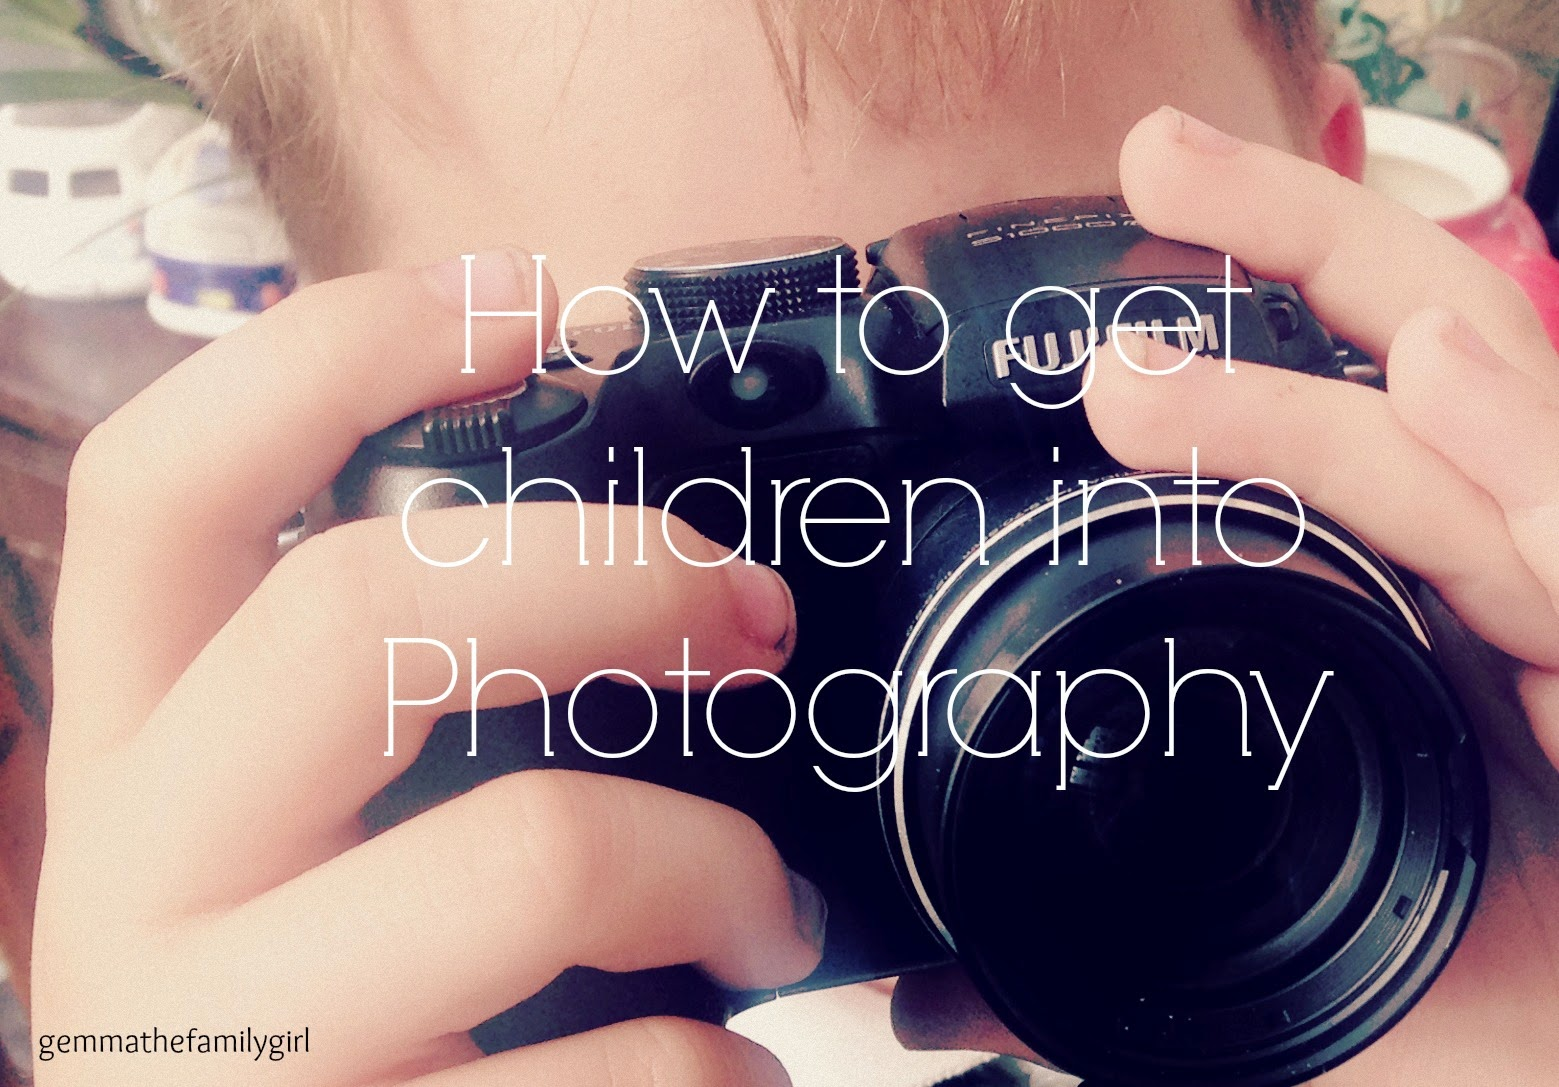 mini photographer, children's photography, fun, camera, teach, learn, photos, blogger, blogging tips, parent, family, how to,